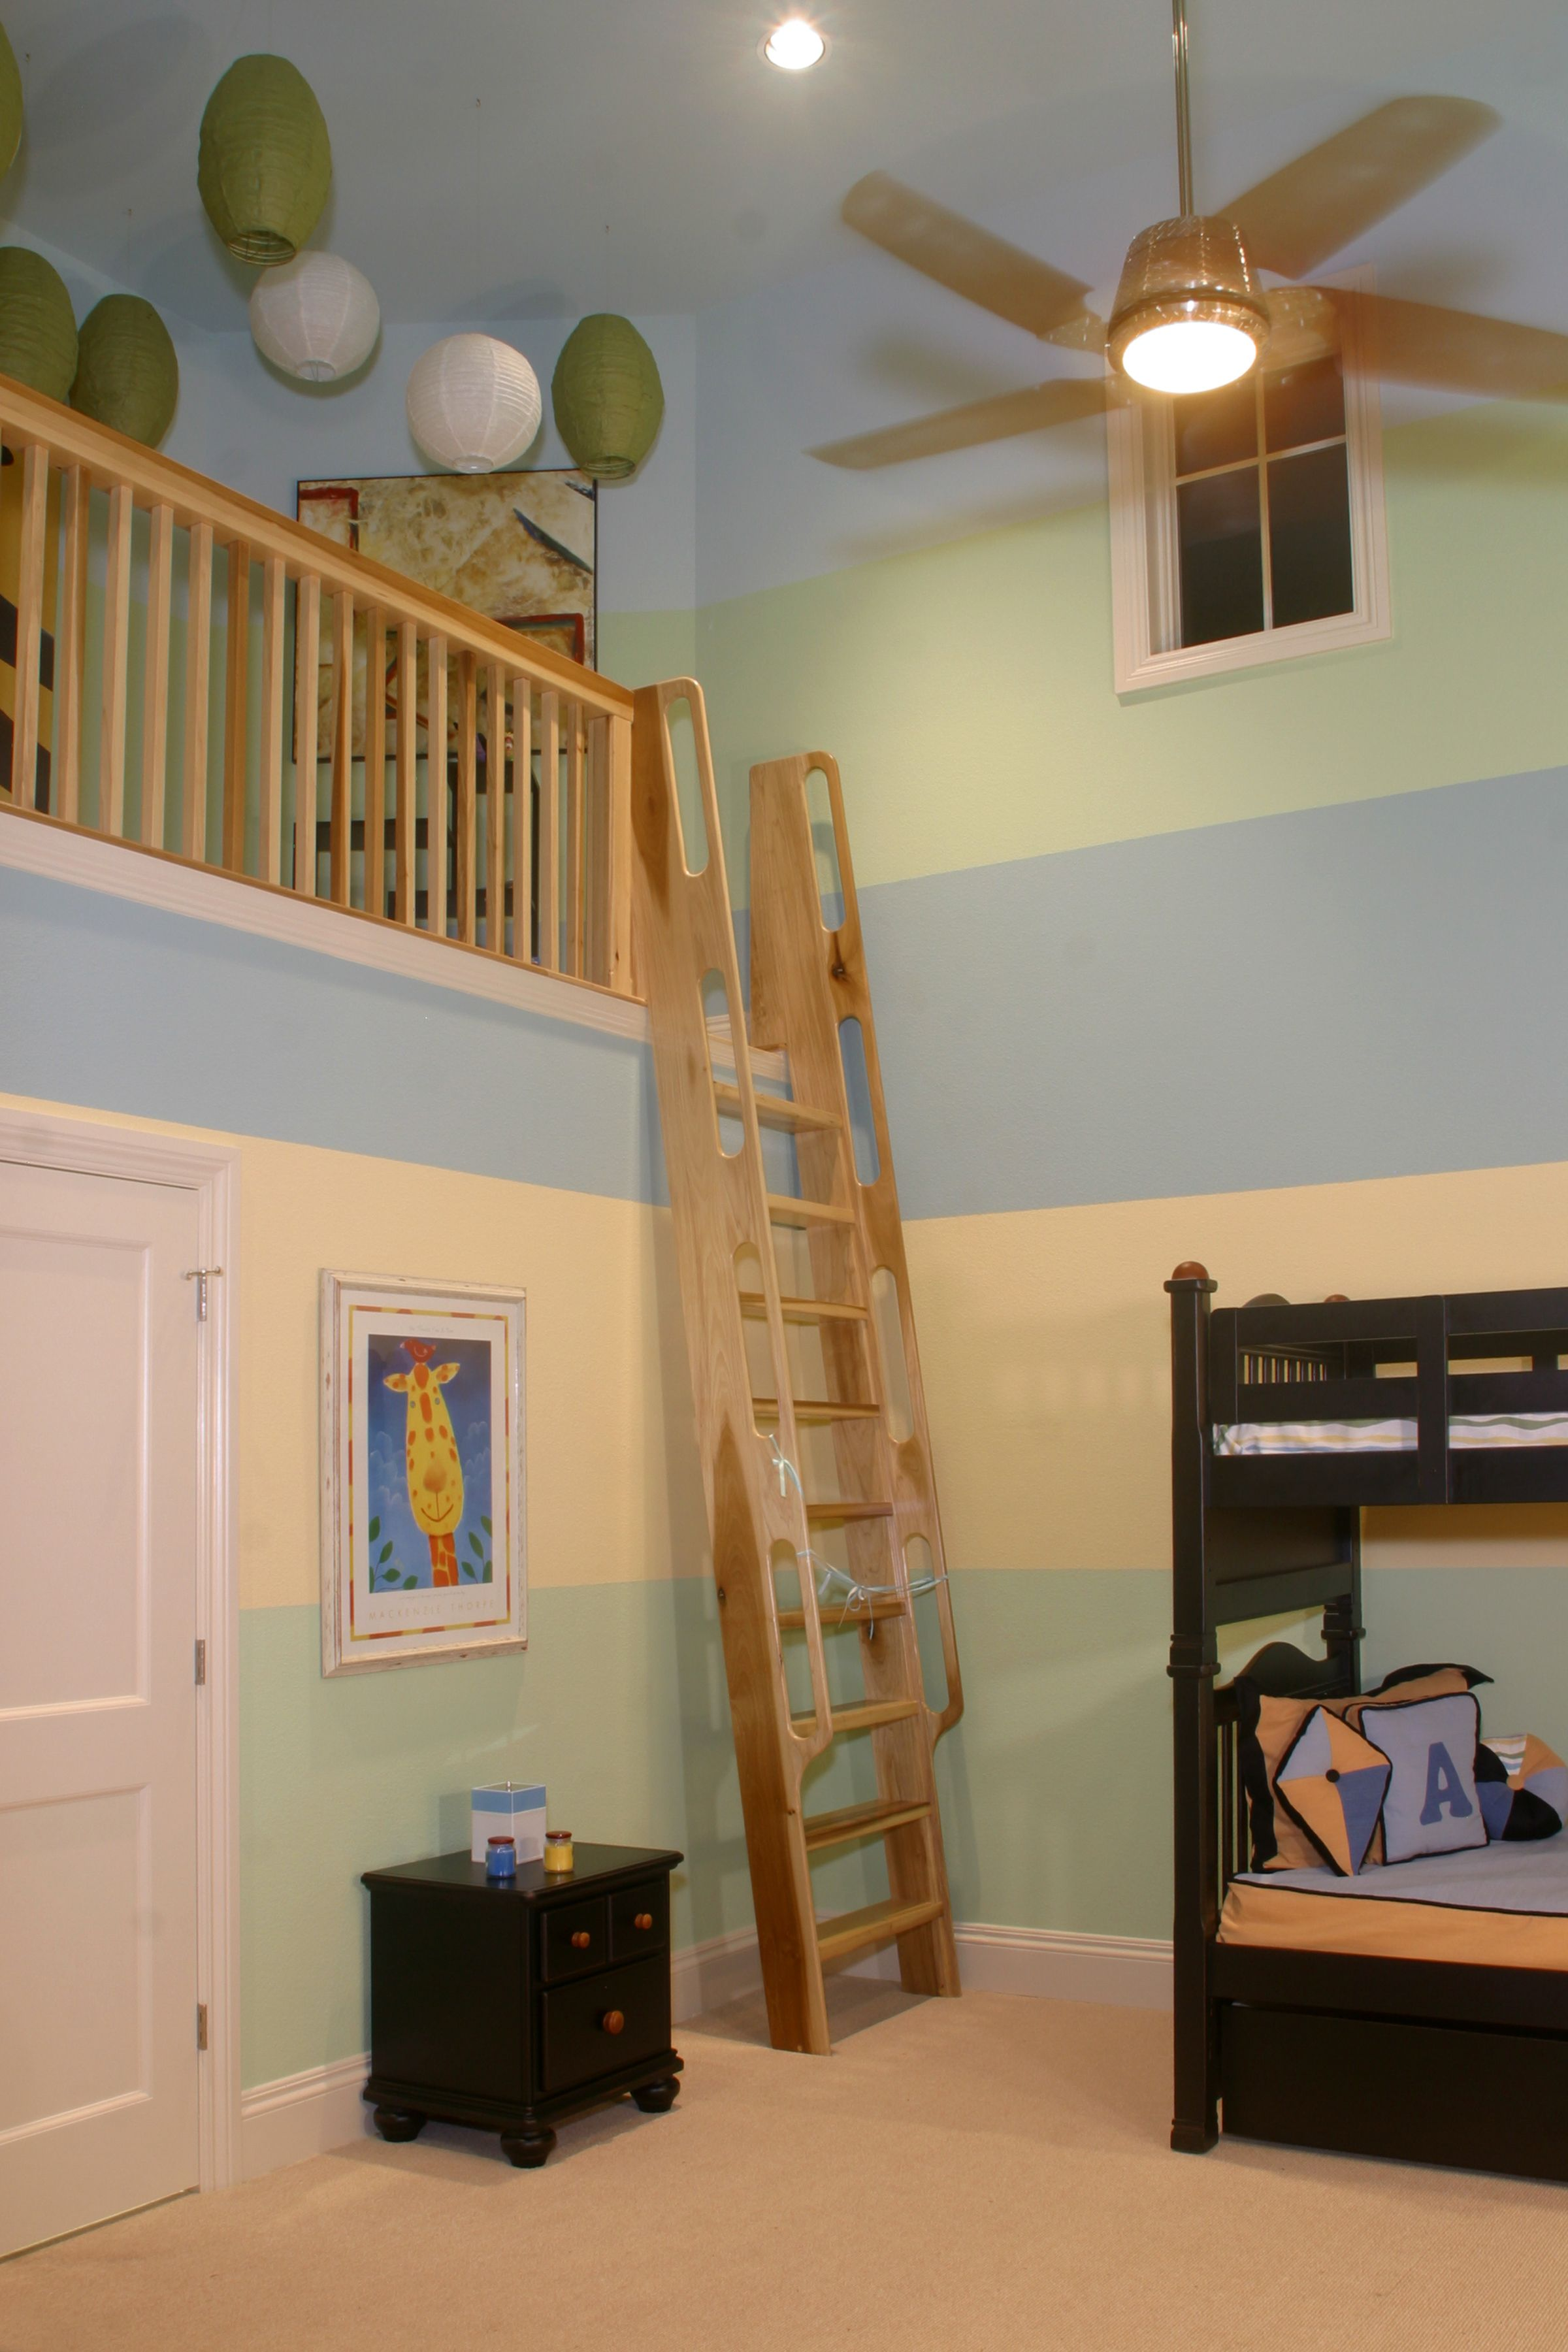 Loft bed ideas kids  Kids Bedroom with Loft Bed Ideas  Check this useful article by